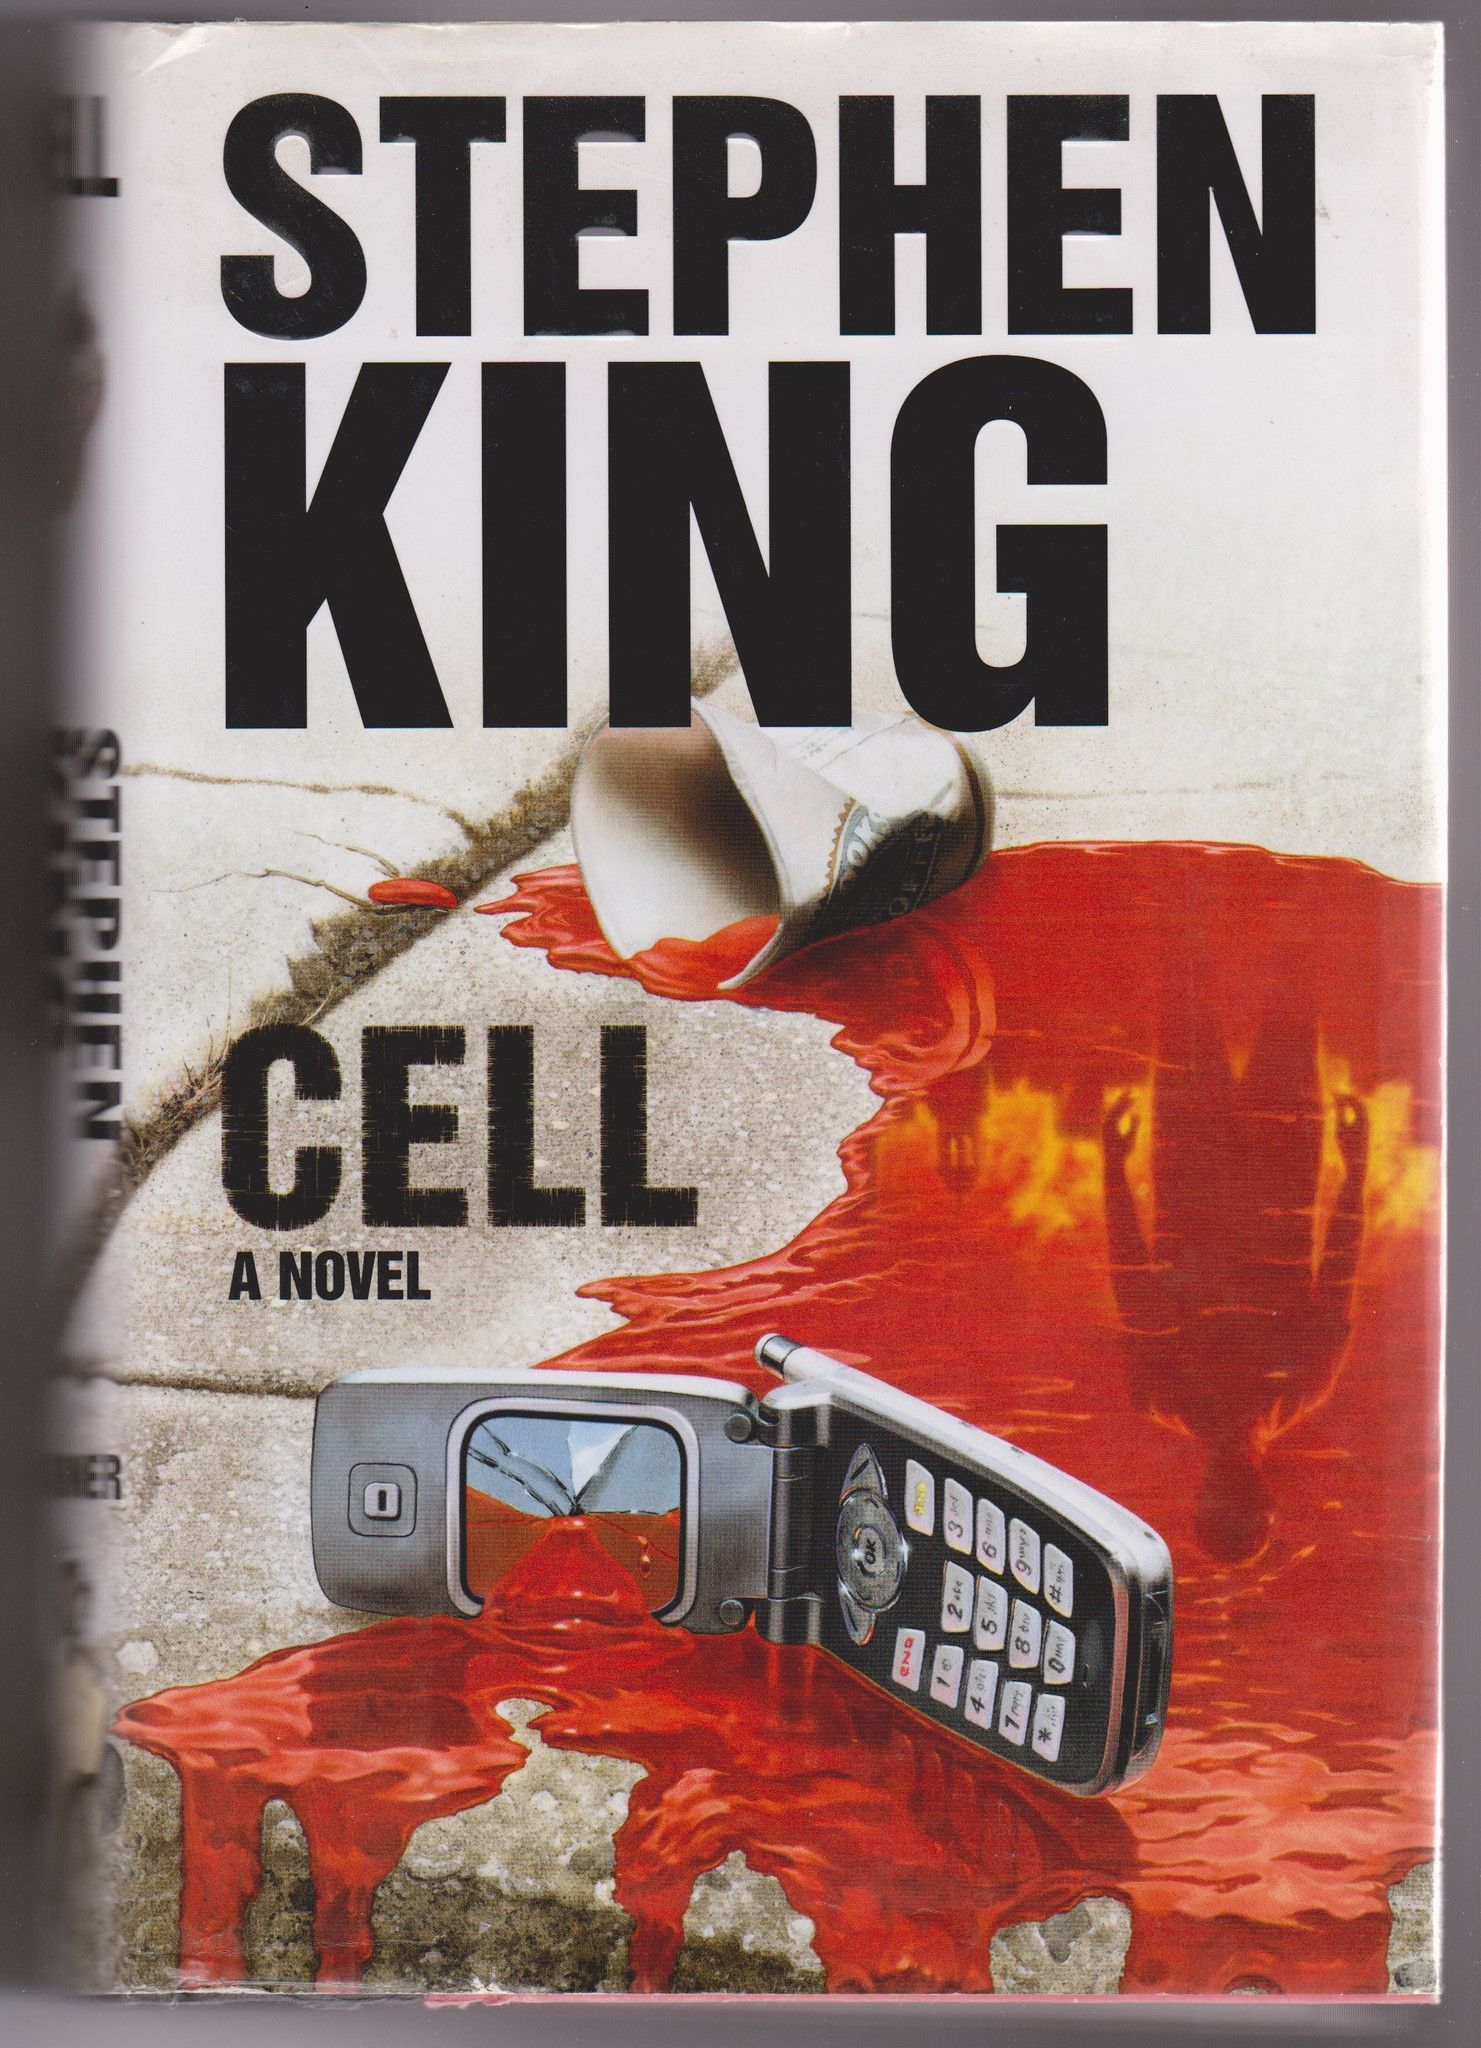 Stephen King Book Cover Art ~ Stephen king cell hardcover used books covers art